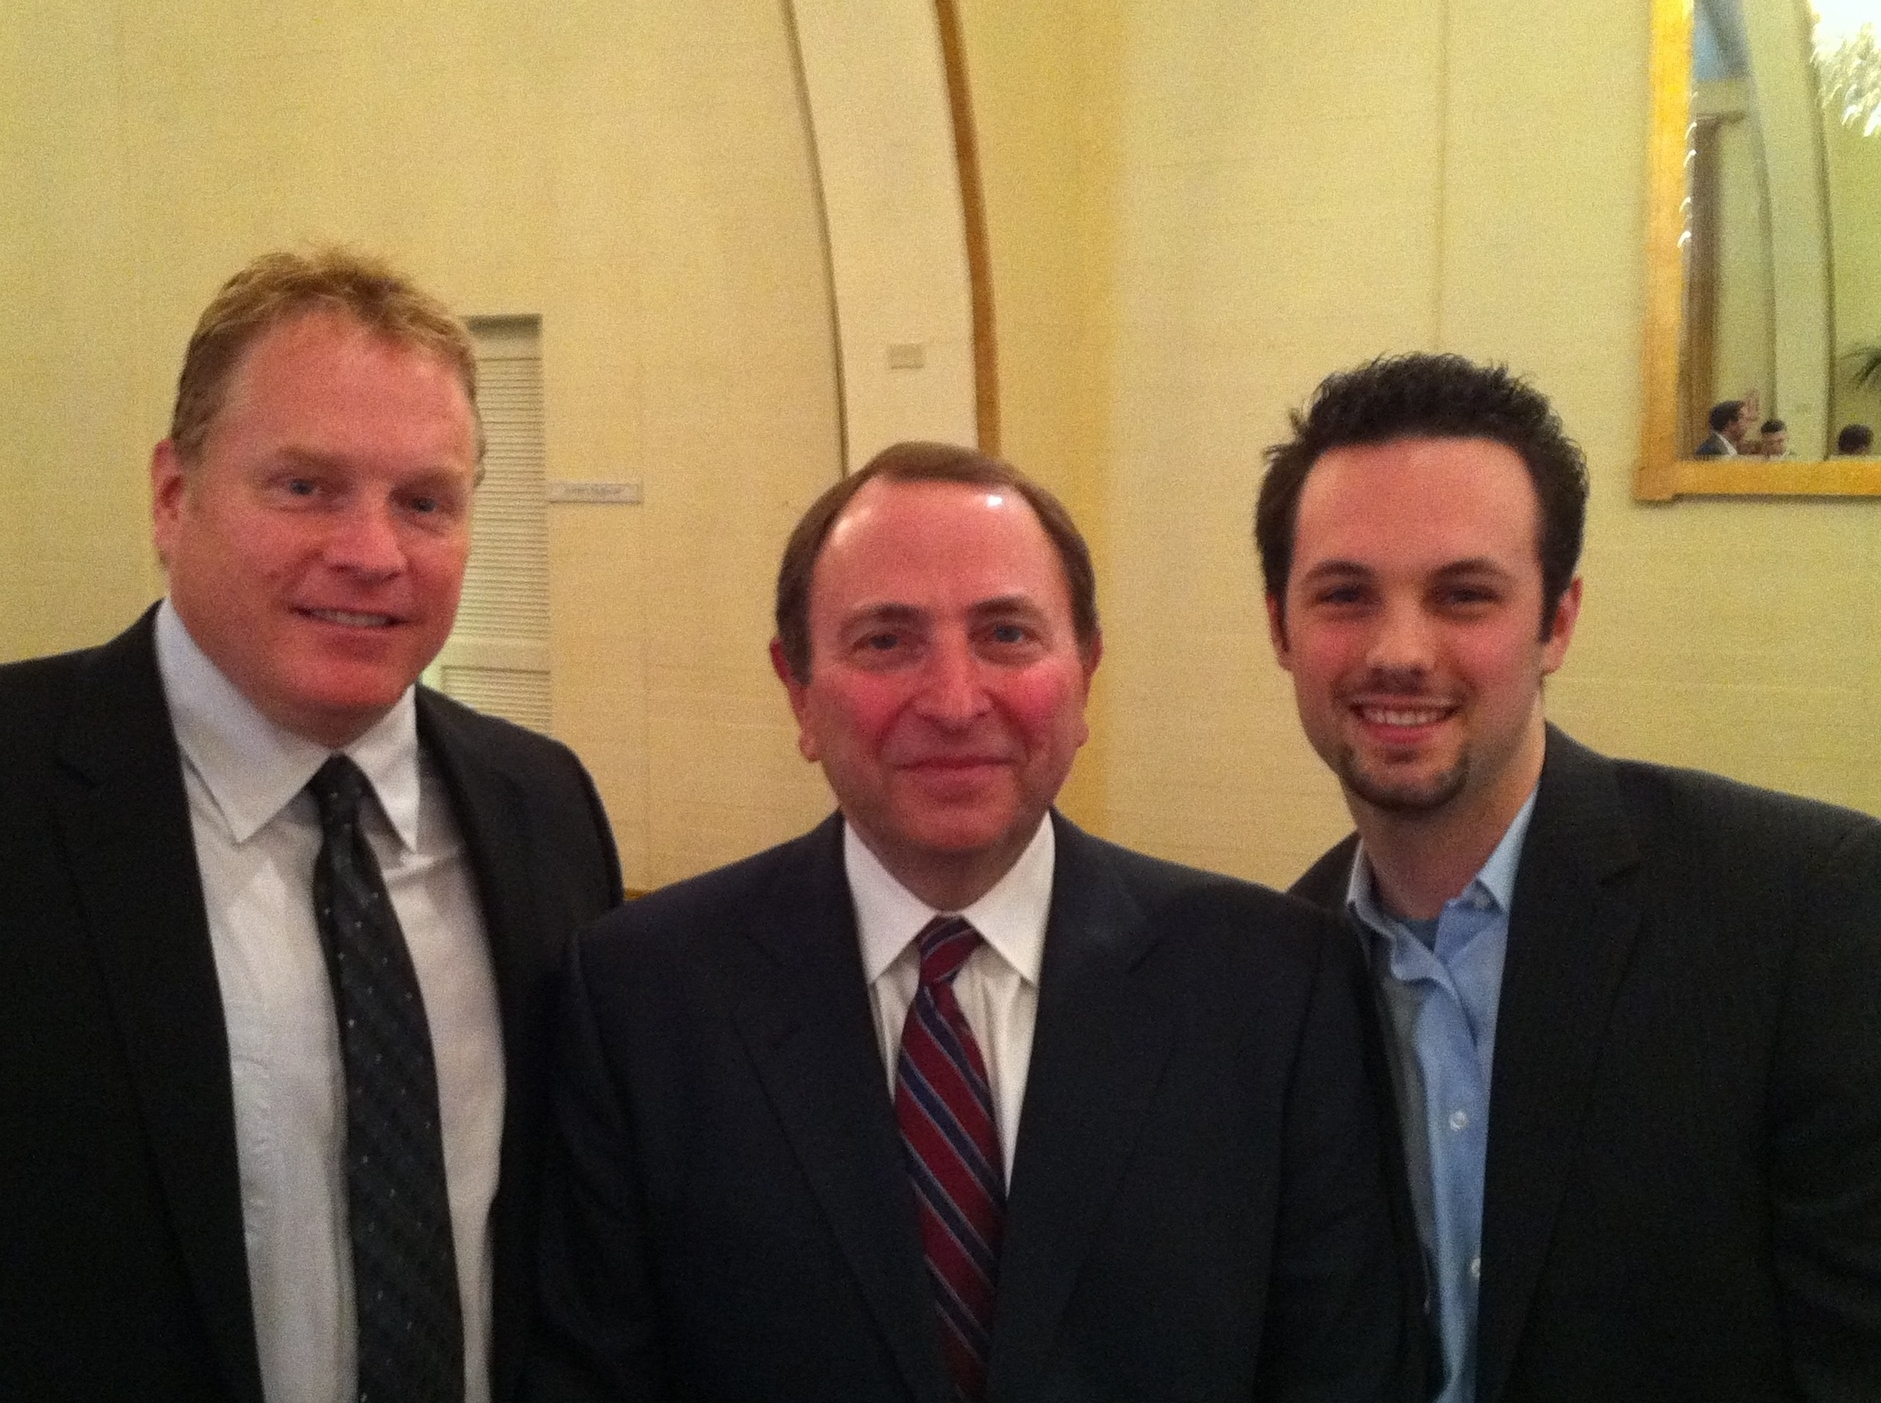 Jason-Mark-Bettman-Photo.jpg